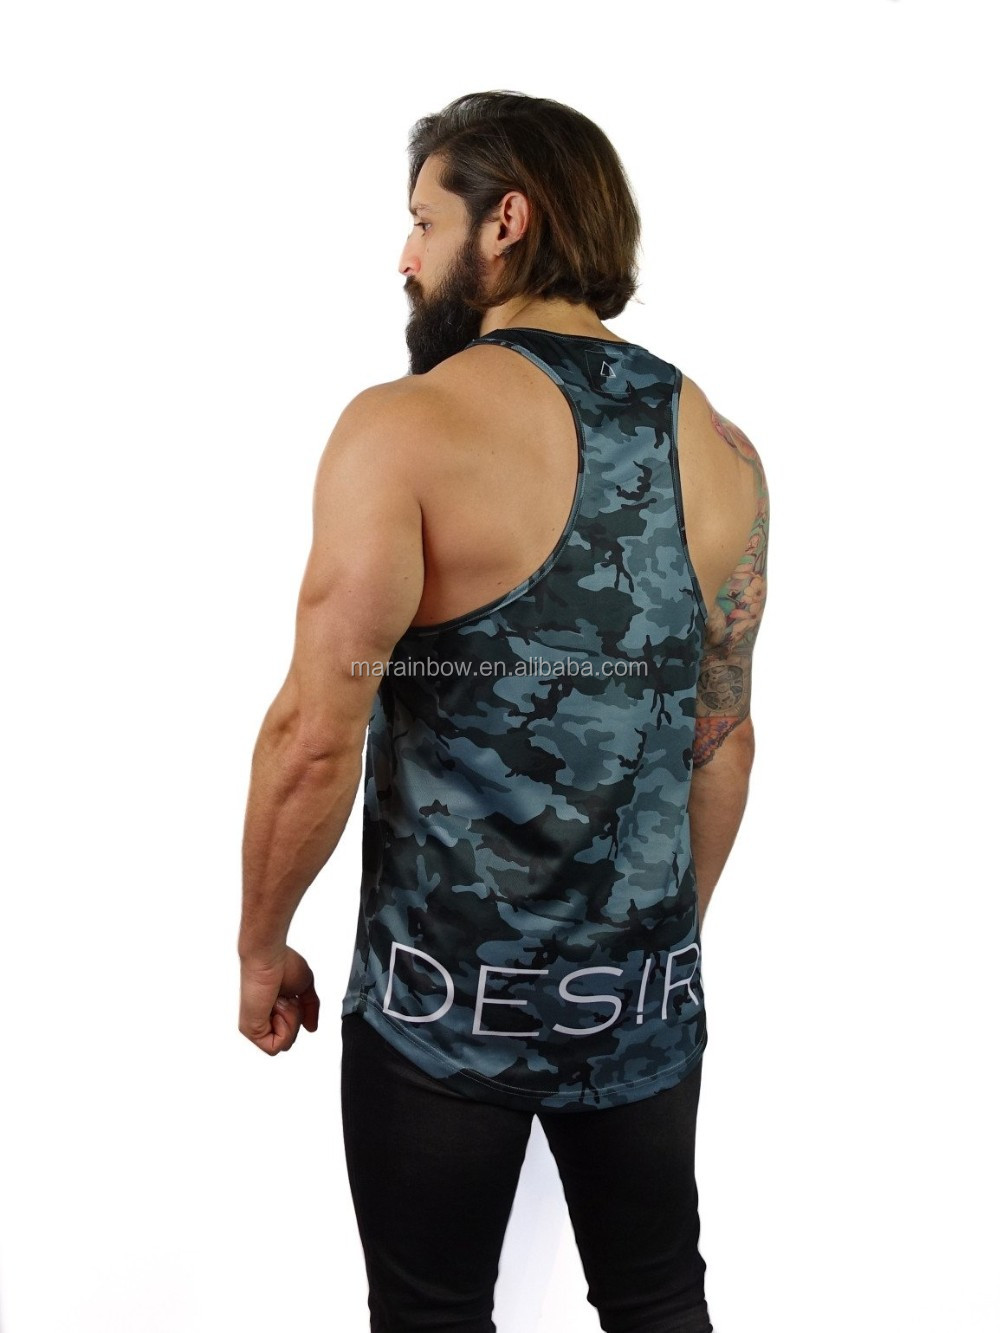 Micro Mesh dry fit elongated tank top Mens Longline Curved Hem Tank Top Camo Basketball Jersey Racerback Sublimated Vests